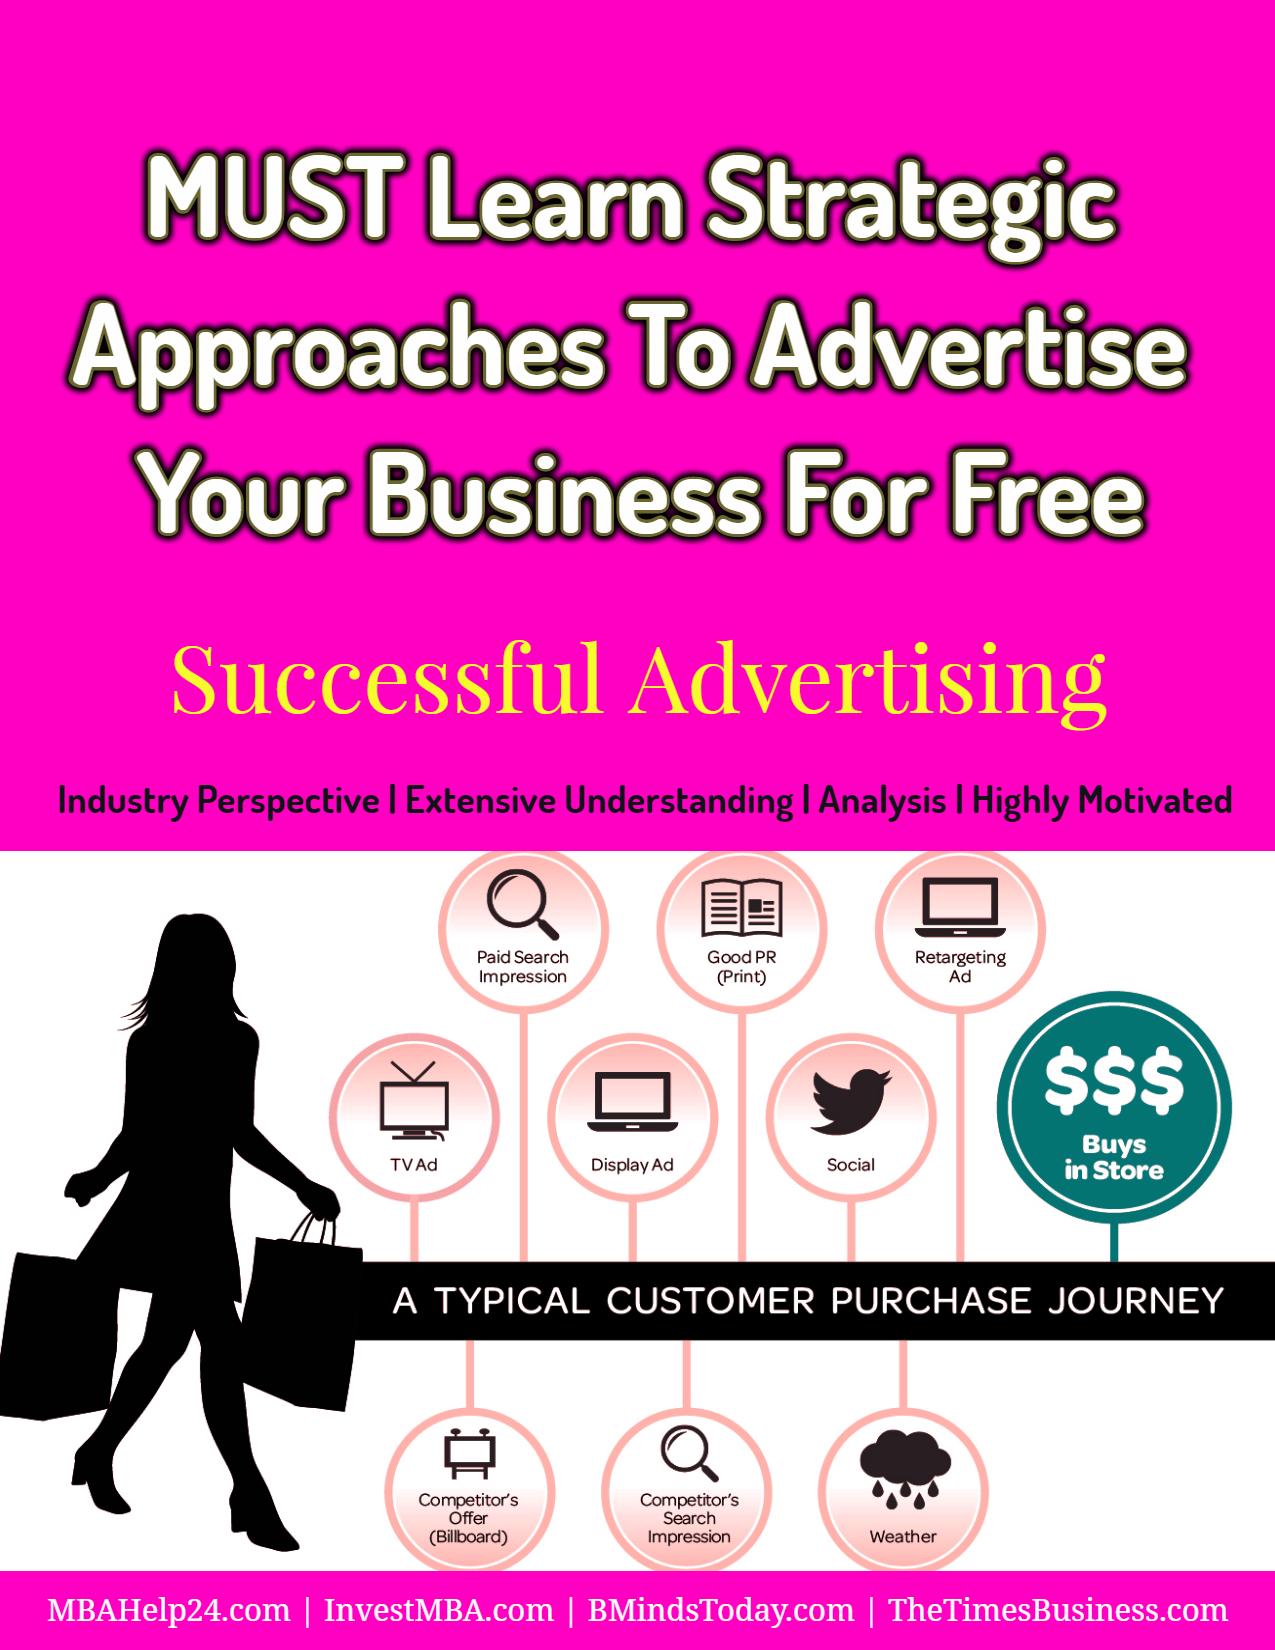 SEVEN Strategic Approaches To Advertise Your Business For Free   Successful Advertising advertising MUST Learn Strategic Approaches To Advertise Your Business For Free SEVEN Strategic Approaches To Advertise Your Business For Free Successful Advertising